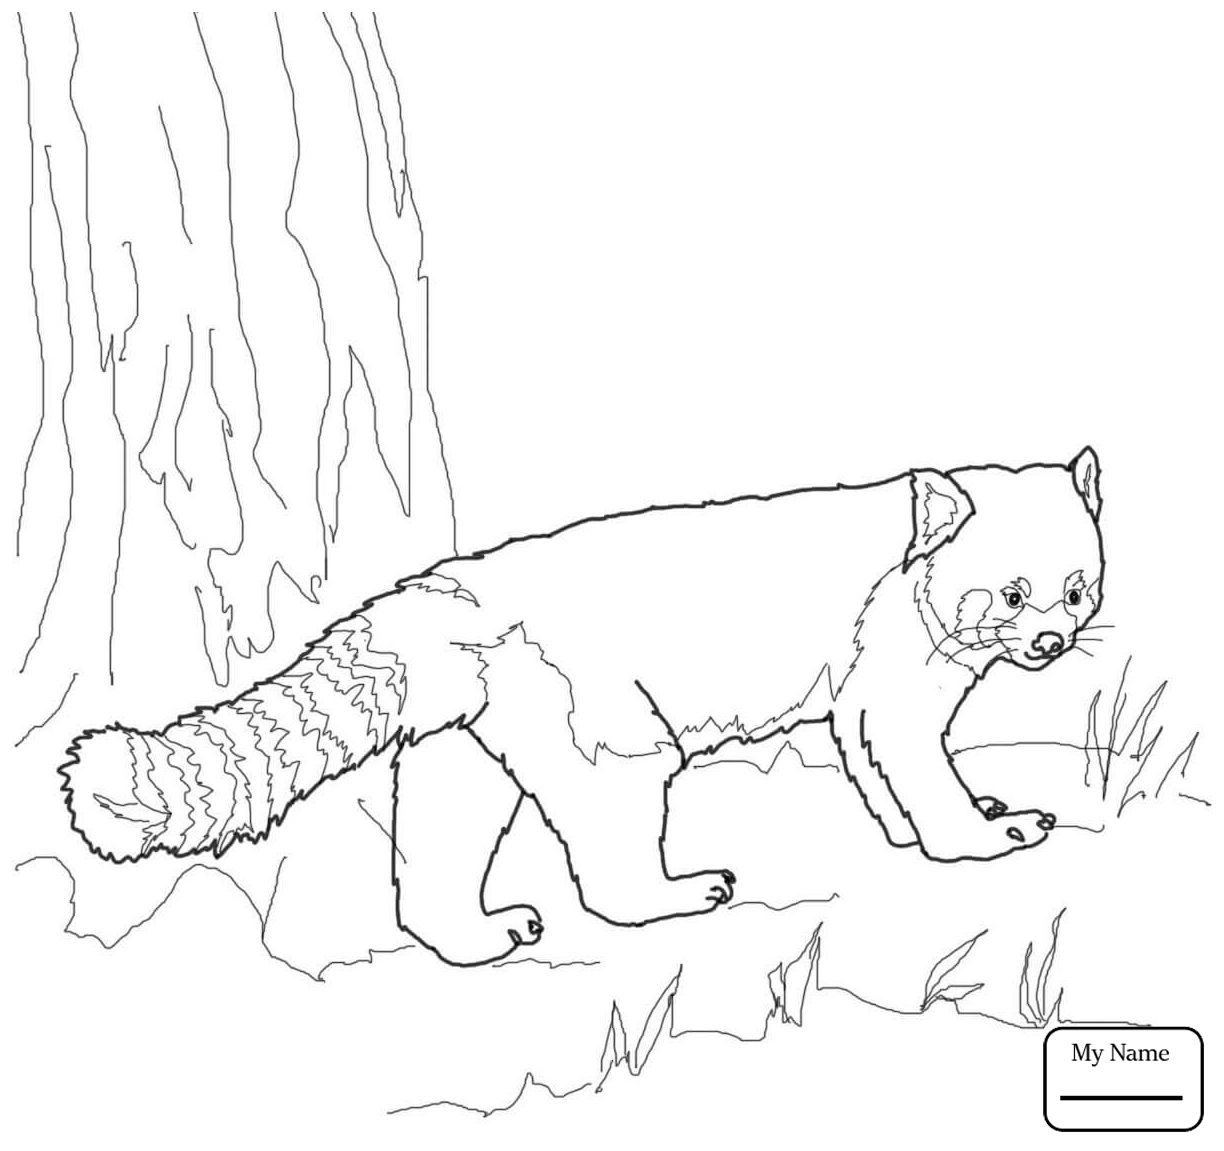 Red Panda Drawing at GetDrawings.com | Free for personal use Red ...